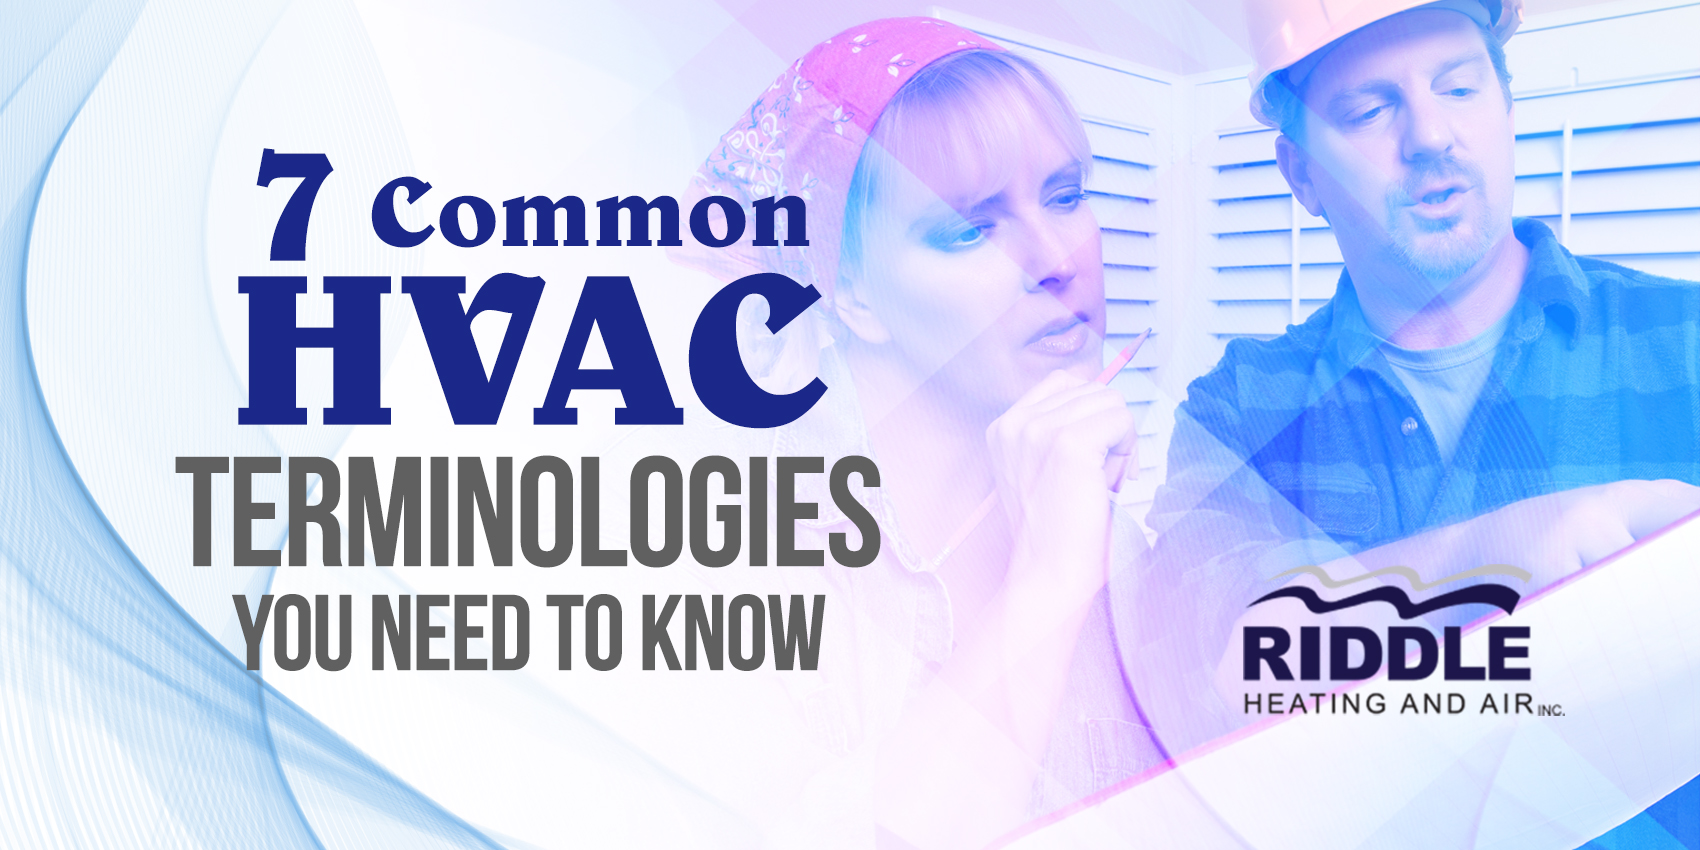 7 Common HVAC Terminologies You Need To Know